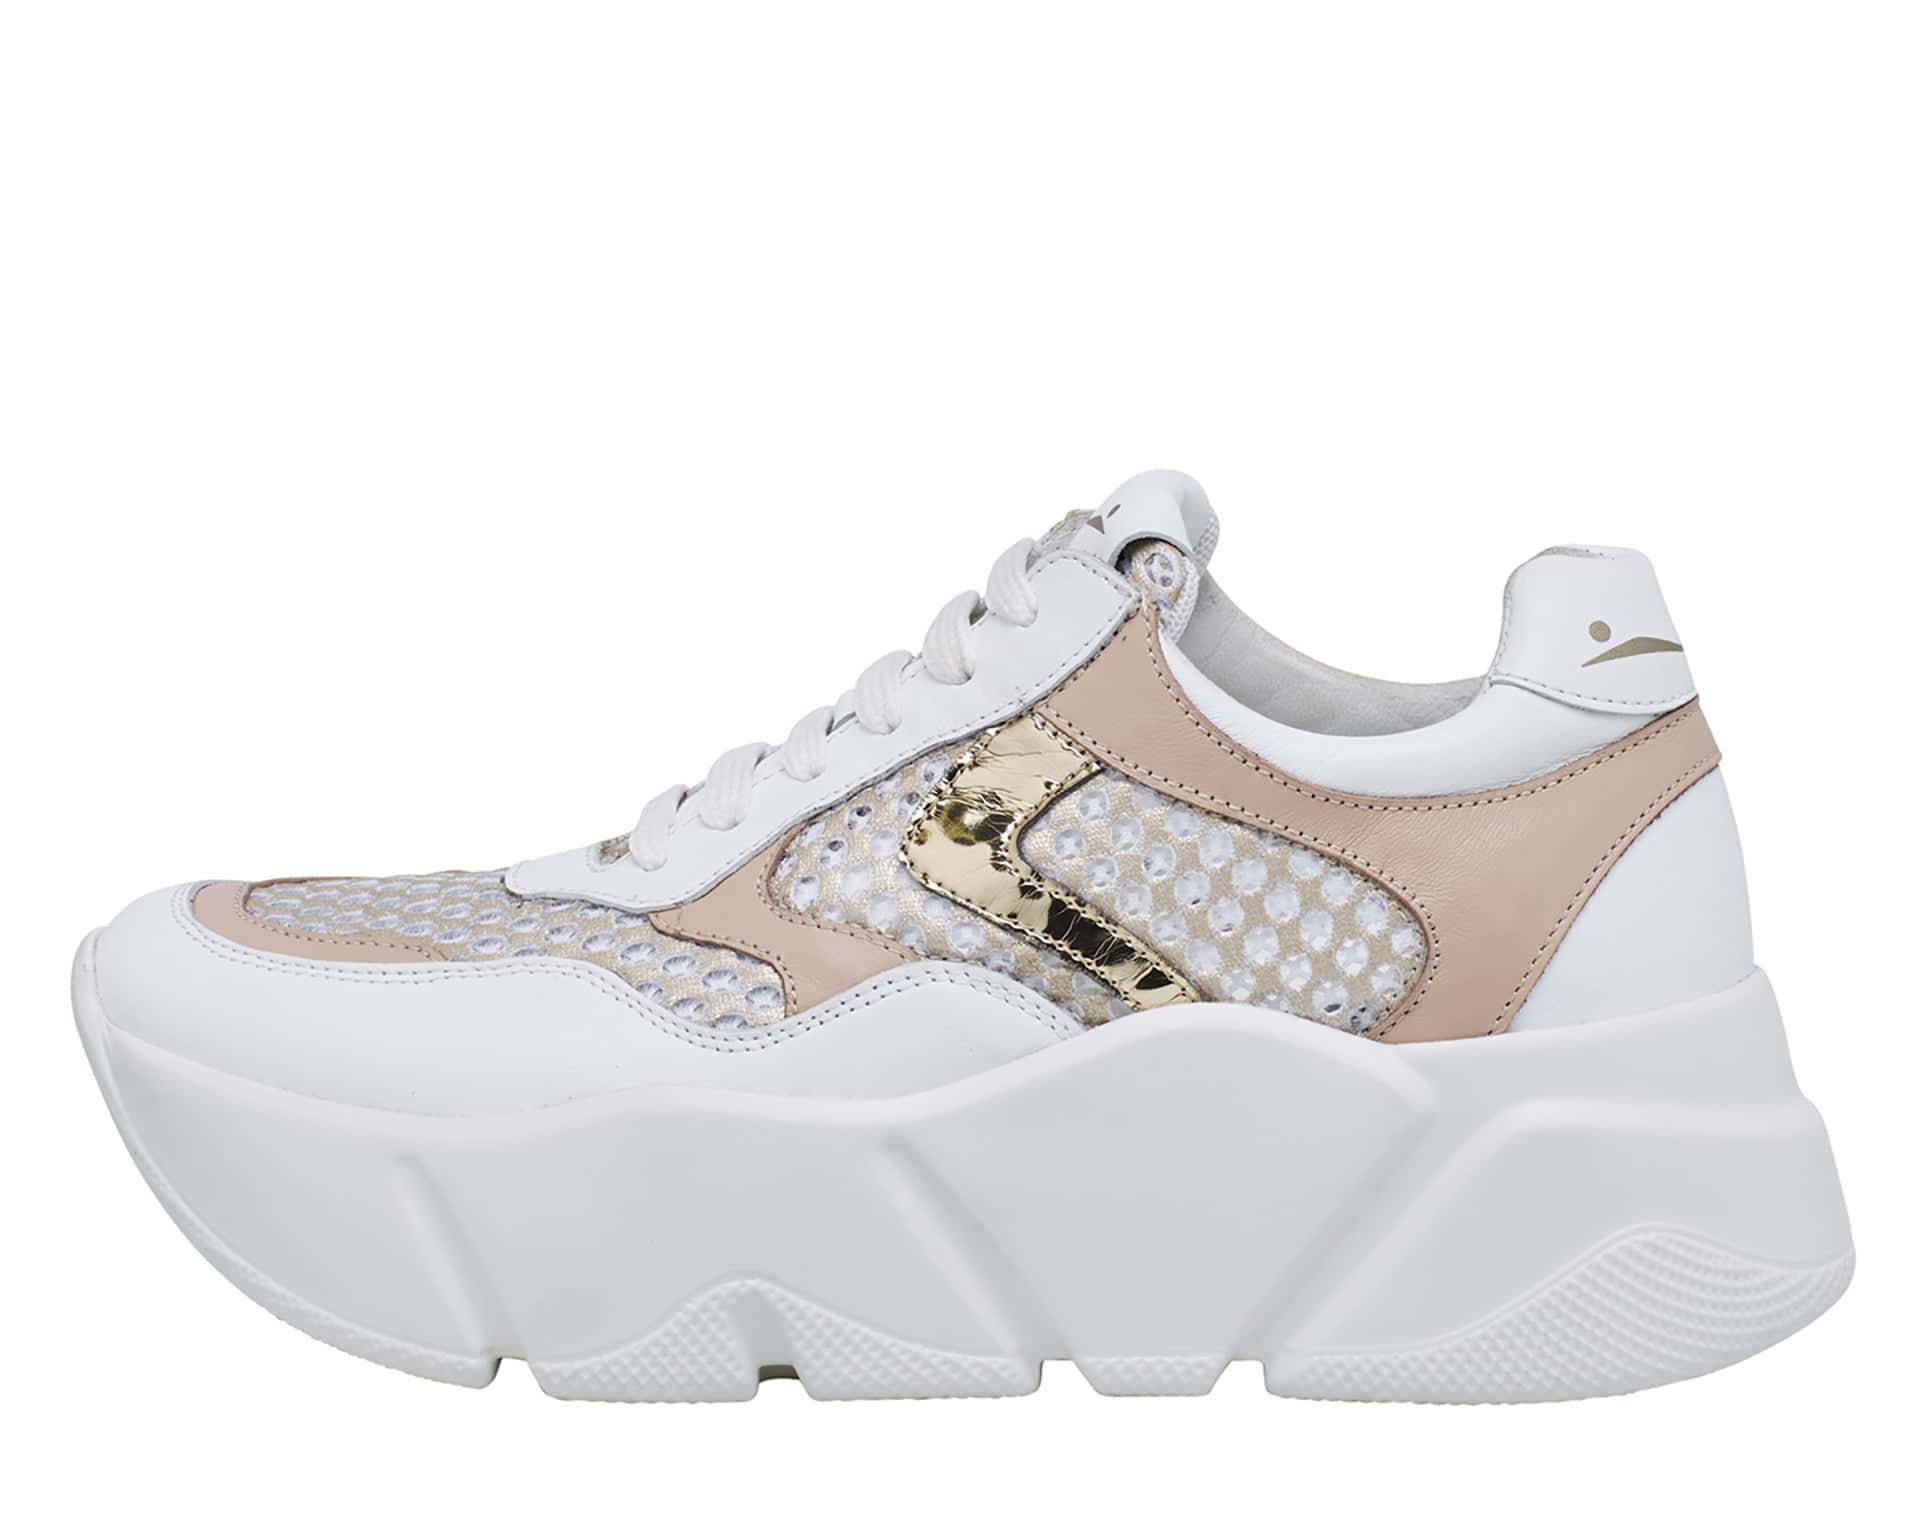 MONSTER MESH - Leather and mesh sneakers - White/Platinum